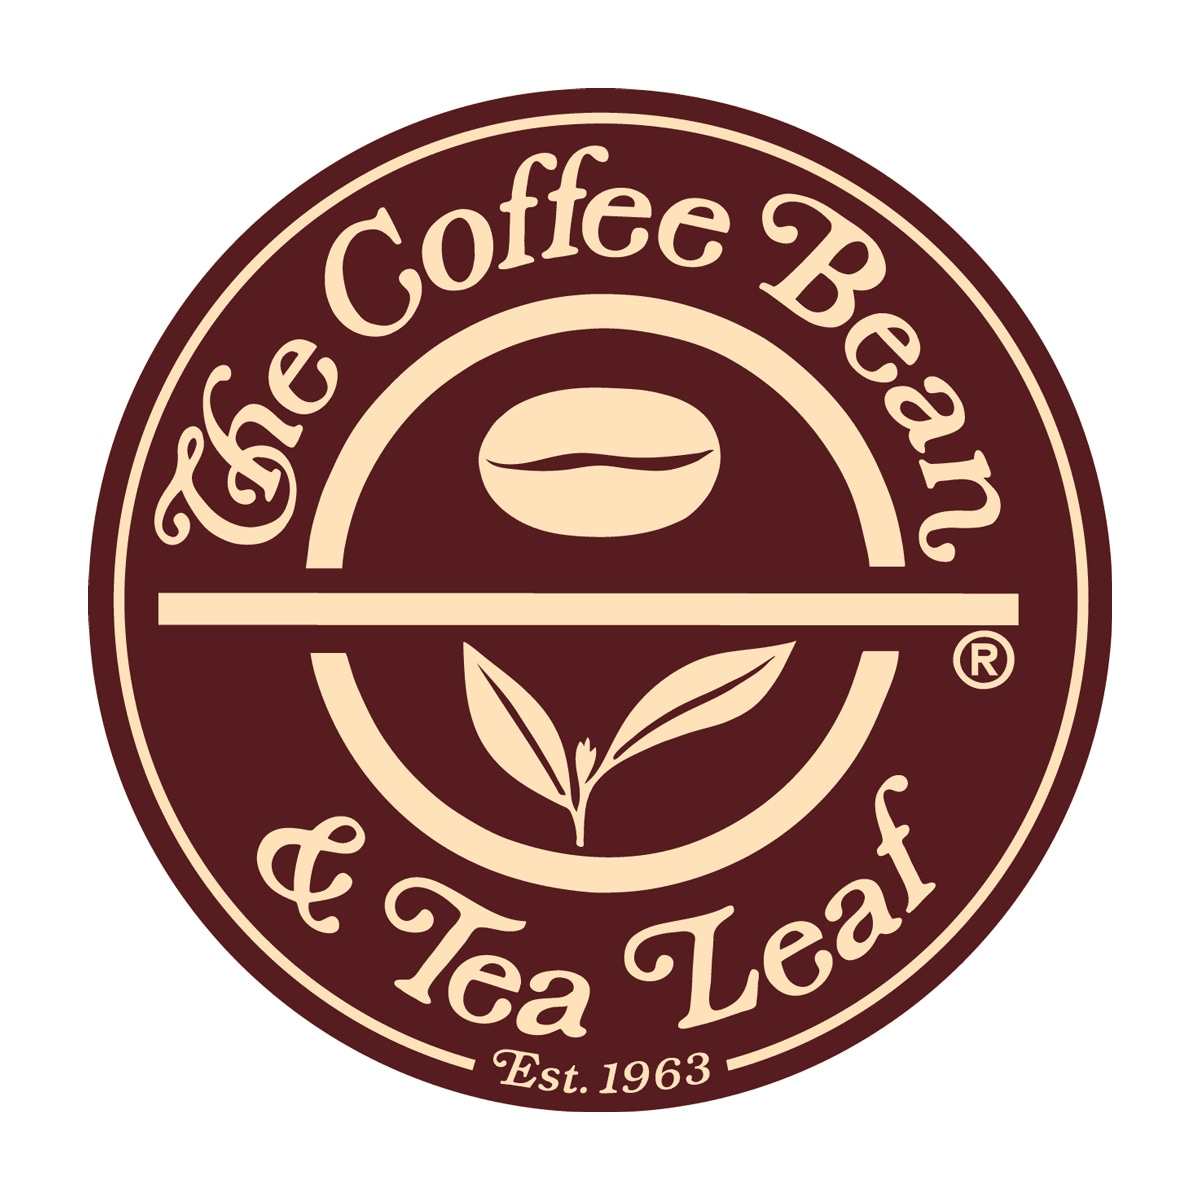 The Coffee Bean & Tea Leaf Coupons